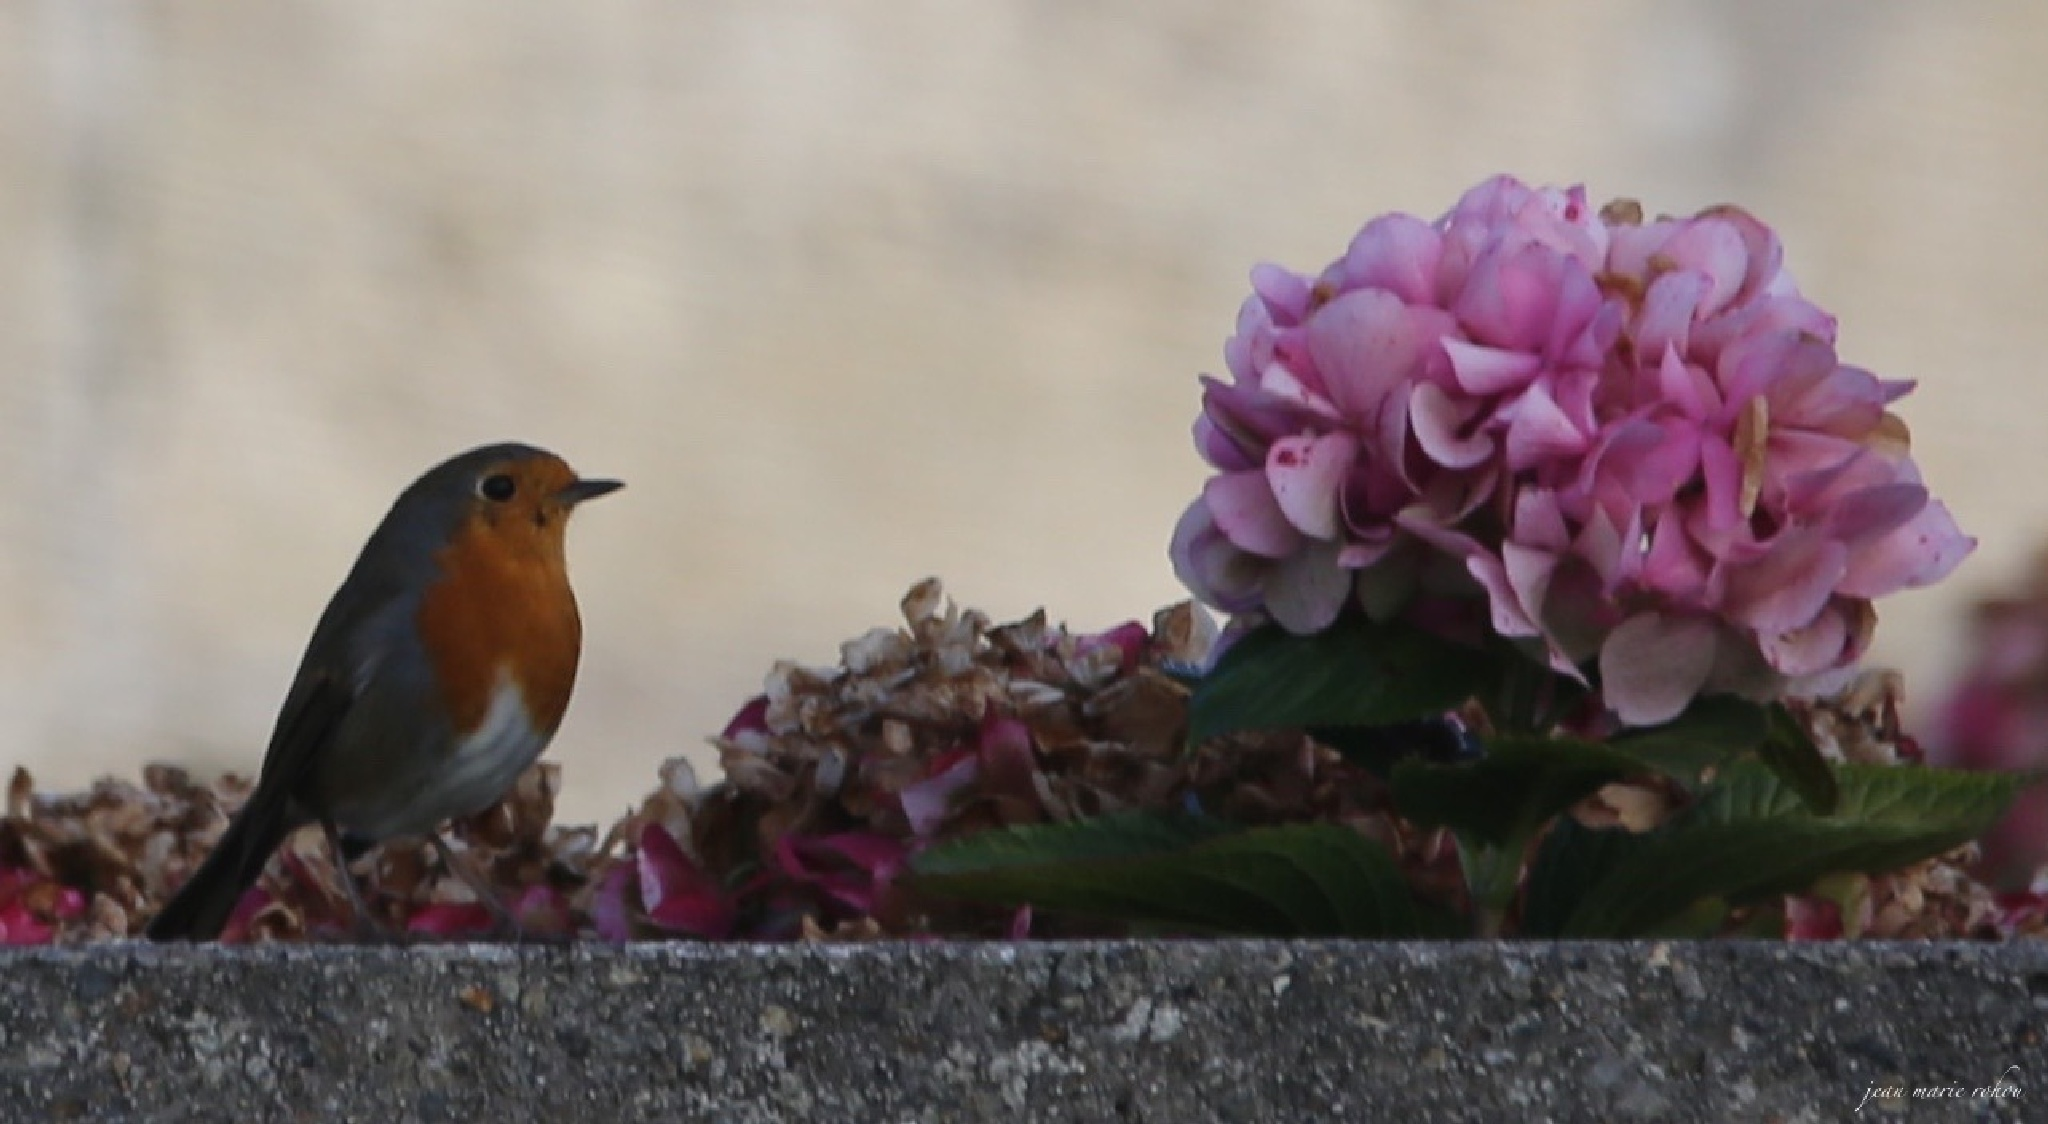 European Robin (with flower) (2) by jean marie rohou